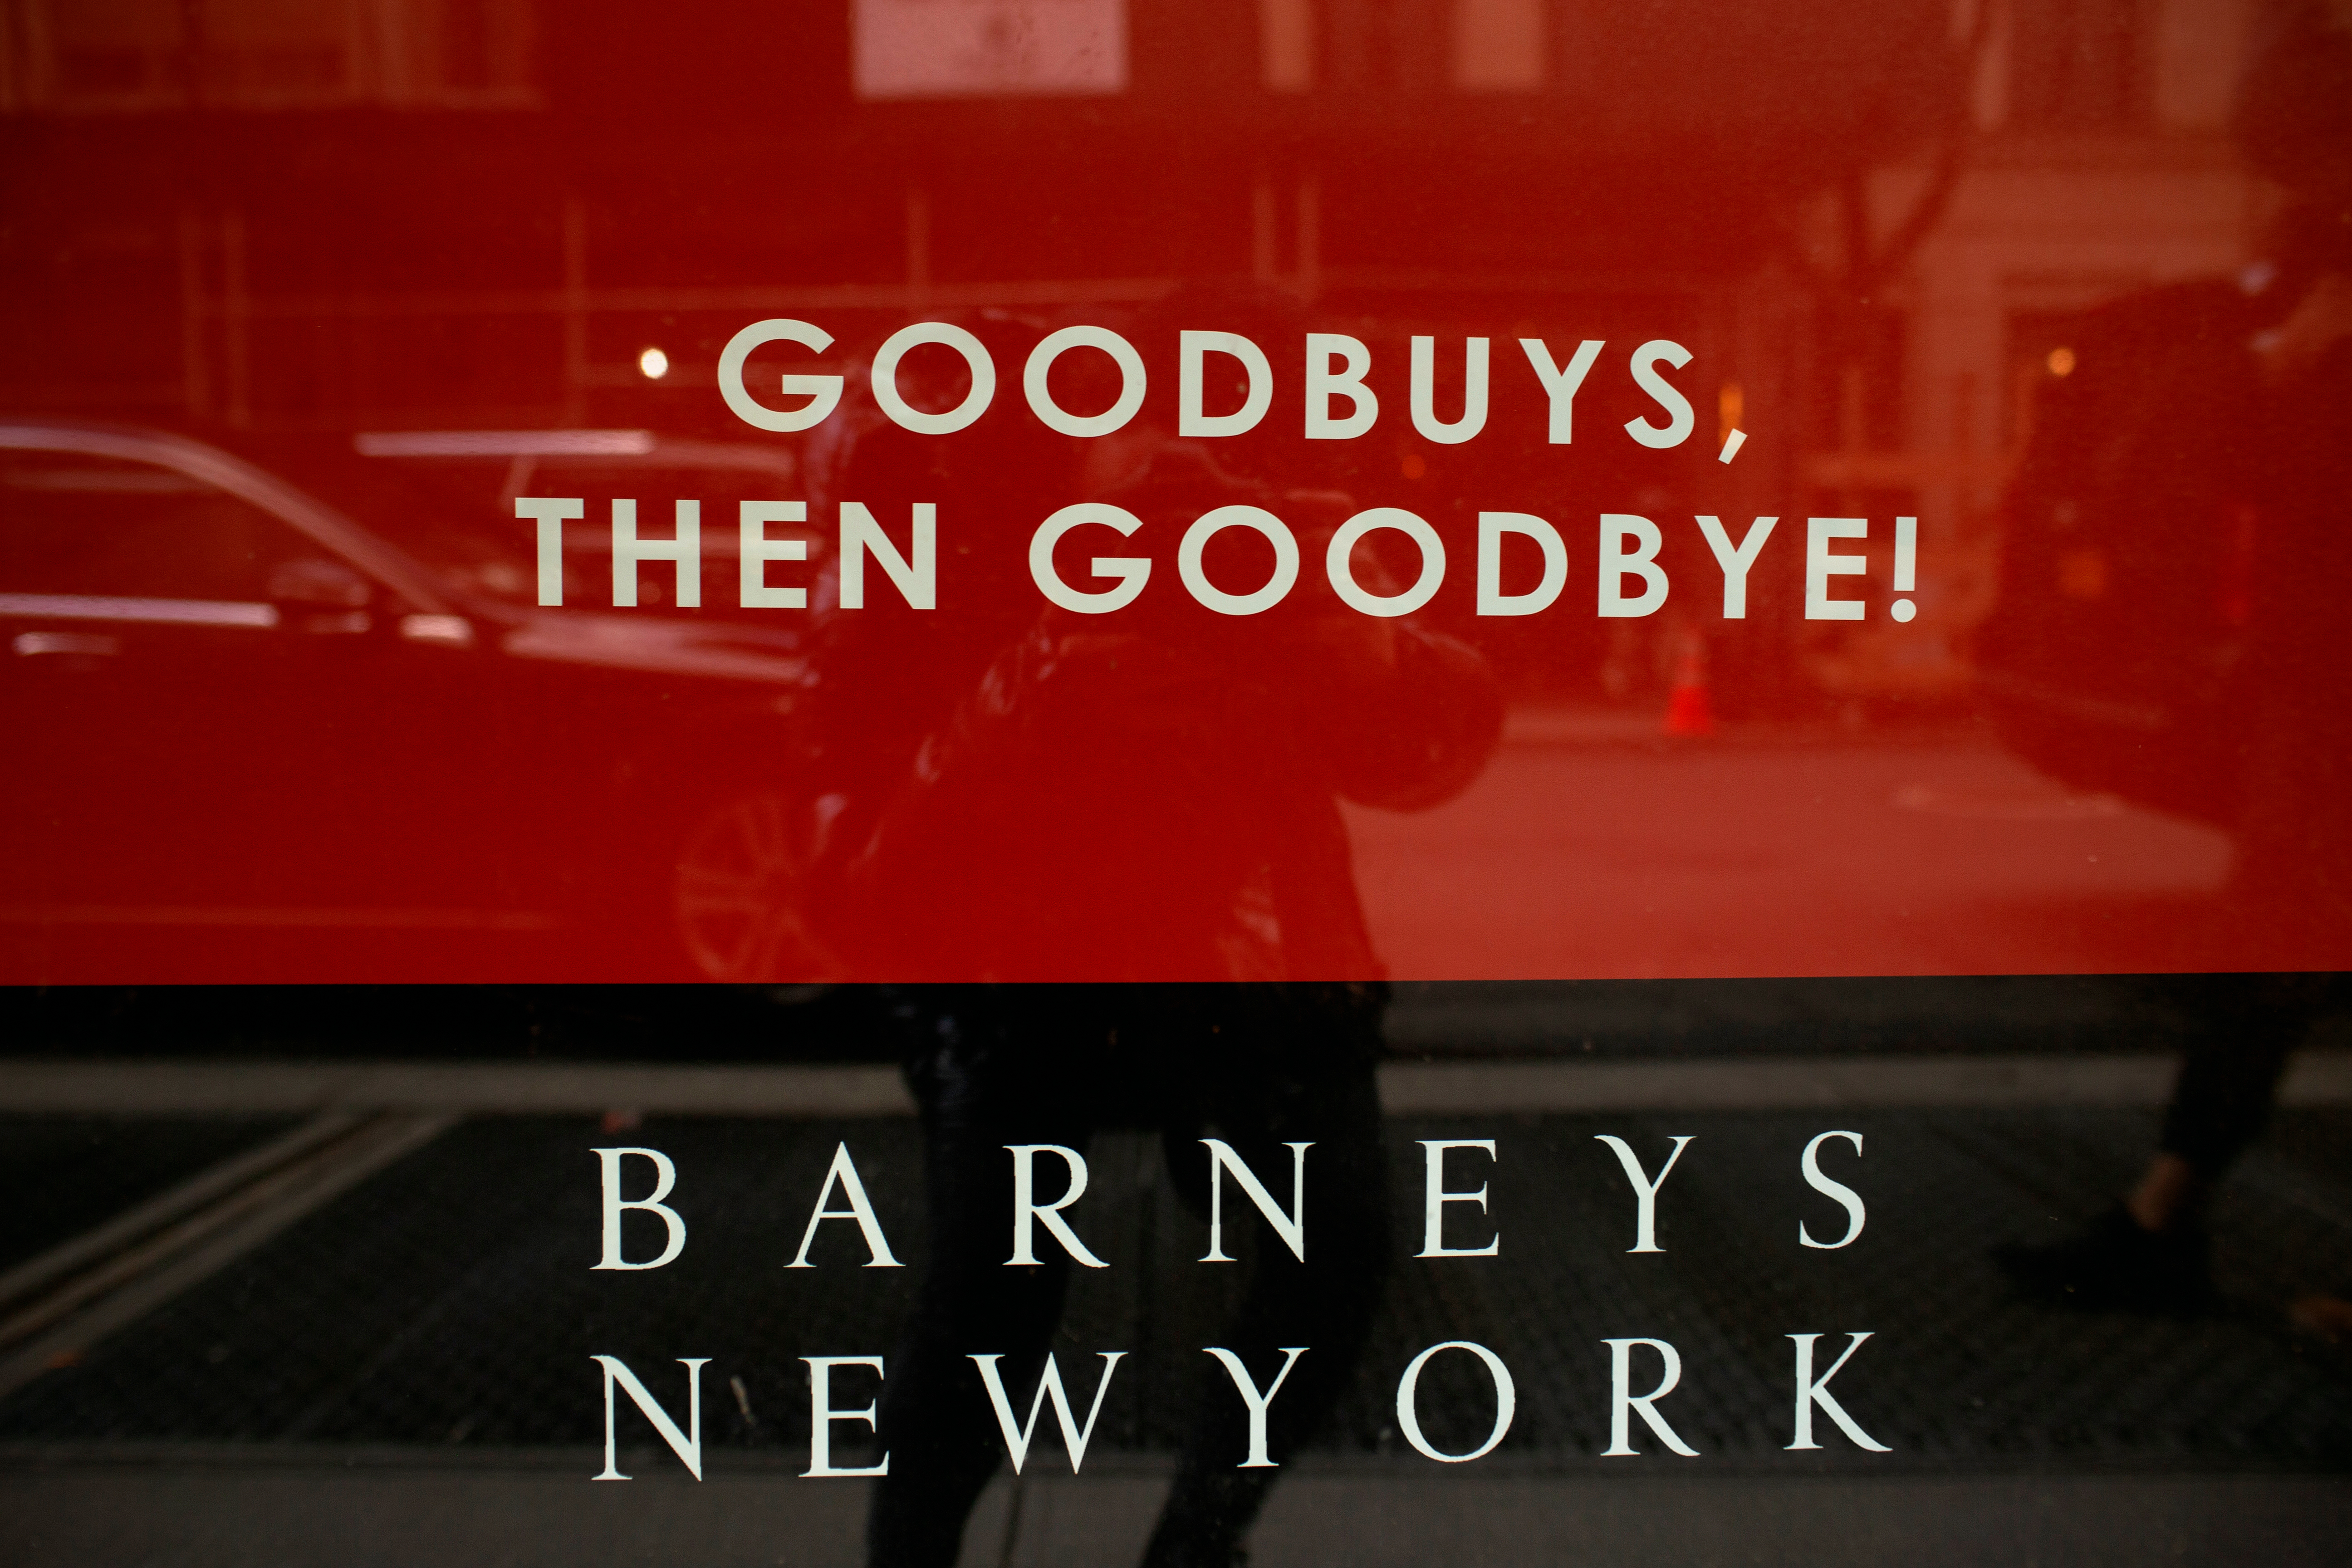 Discounts have abounded at Barneys New York as it liquidates, a far cry from its once chic image.